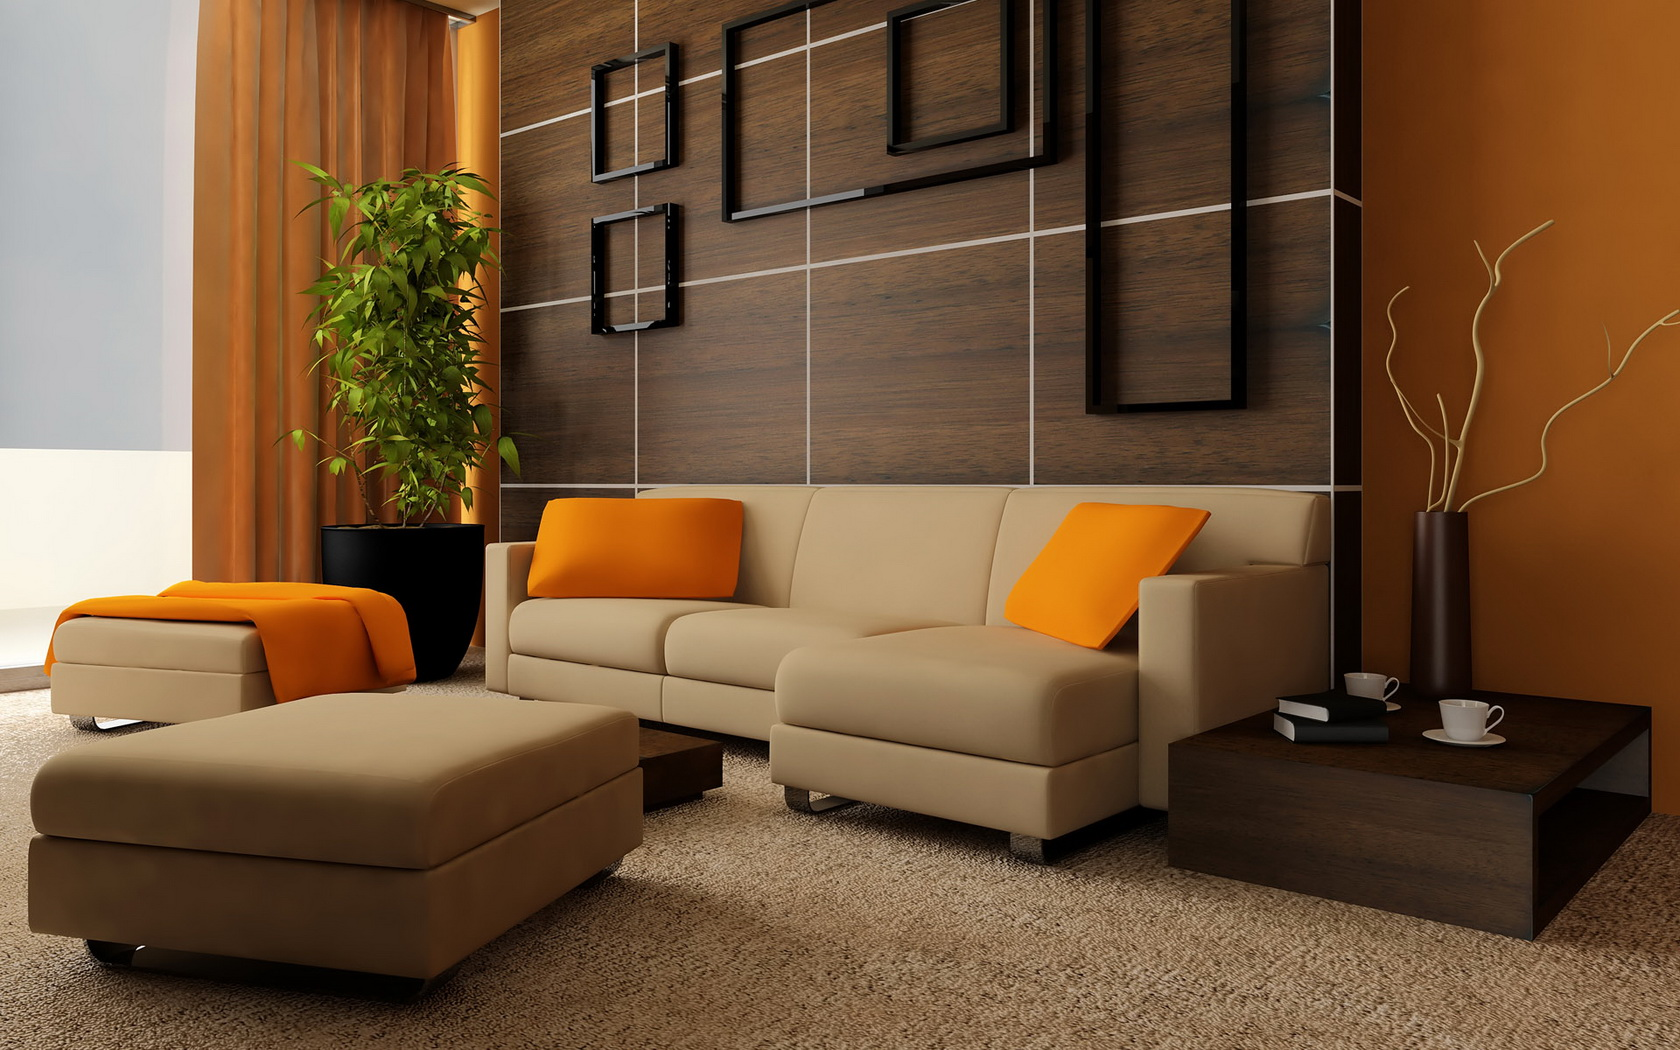 Architecture interior design living room wallpaper for Interior design living room wallpaper